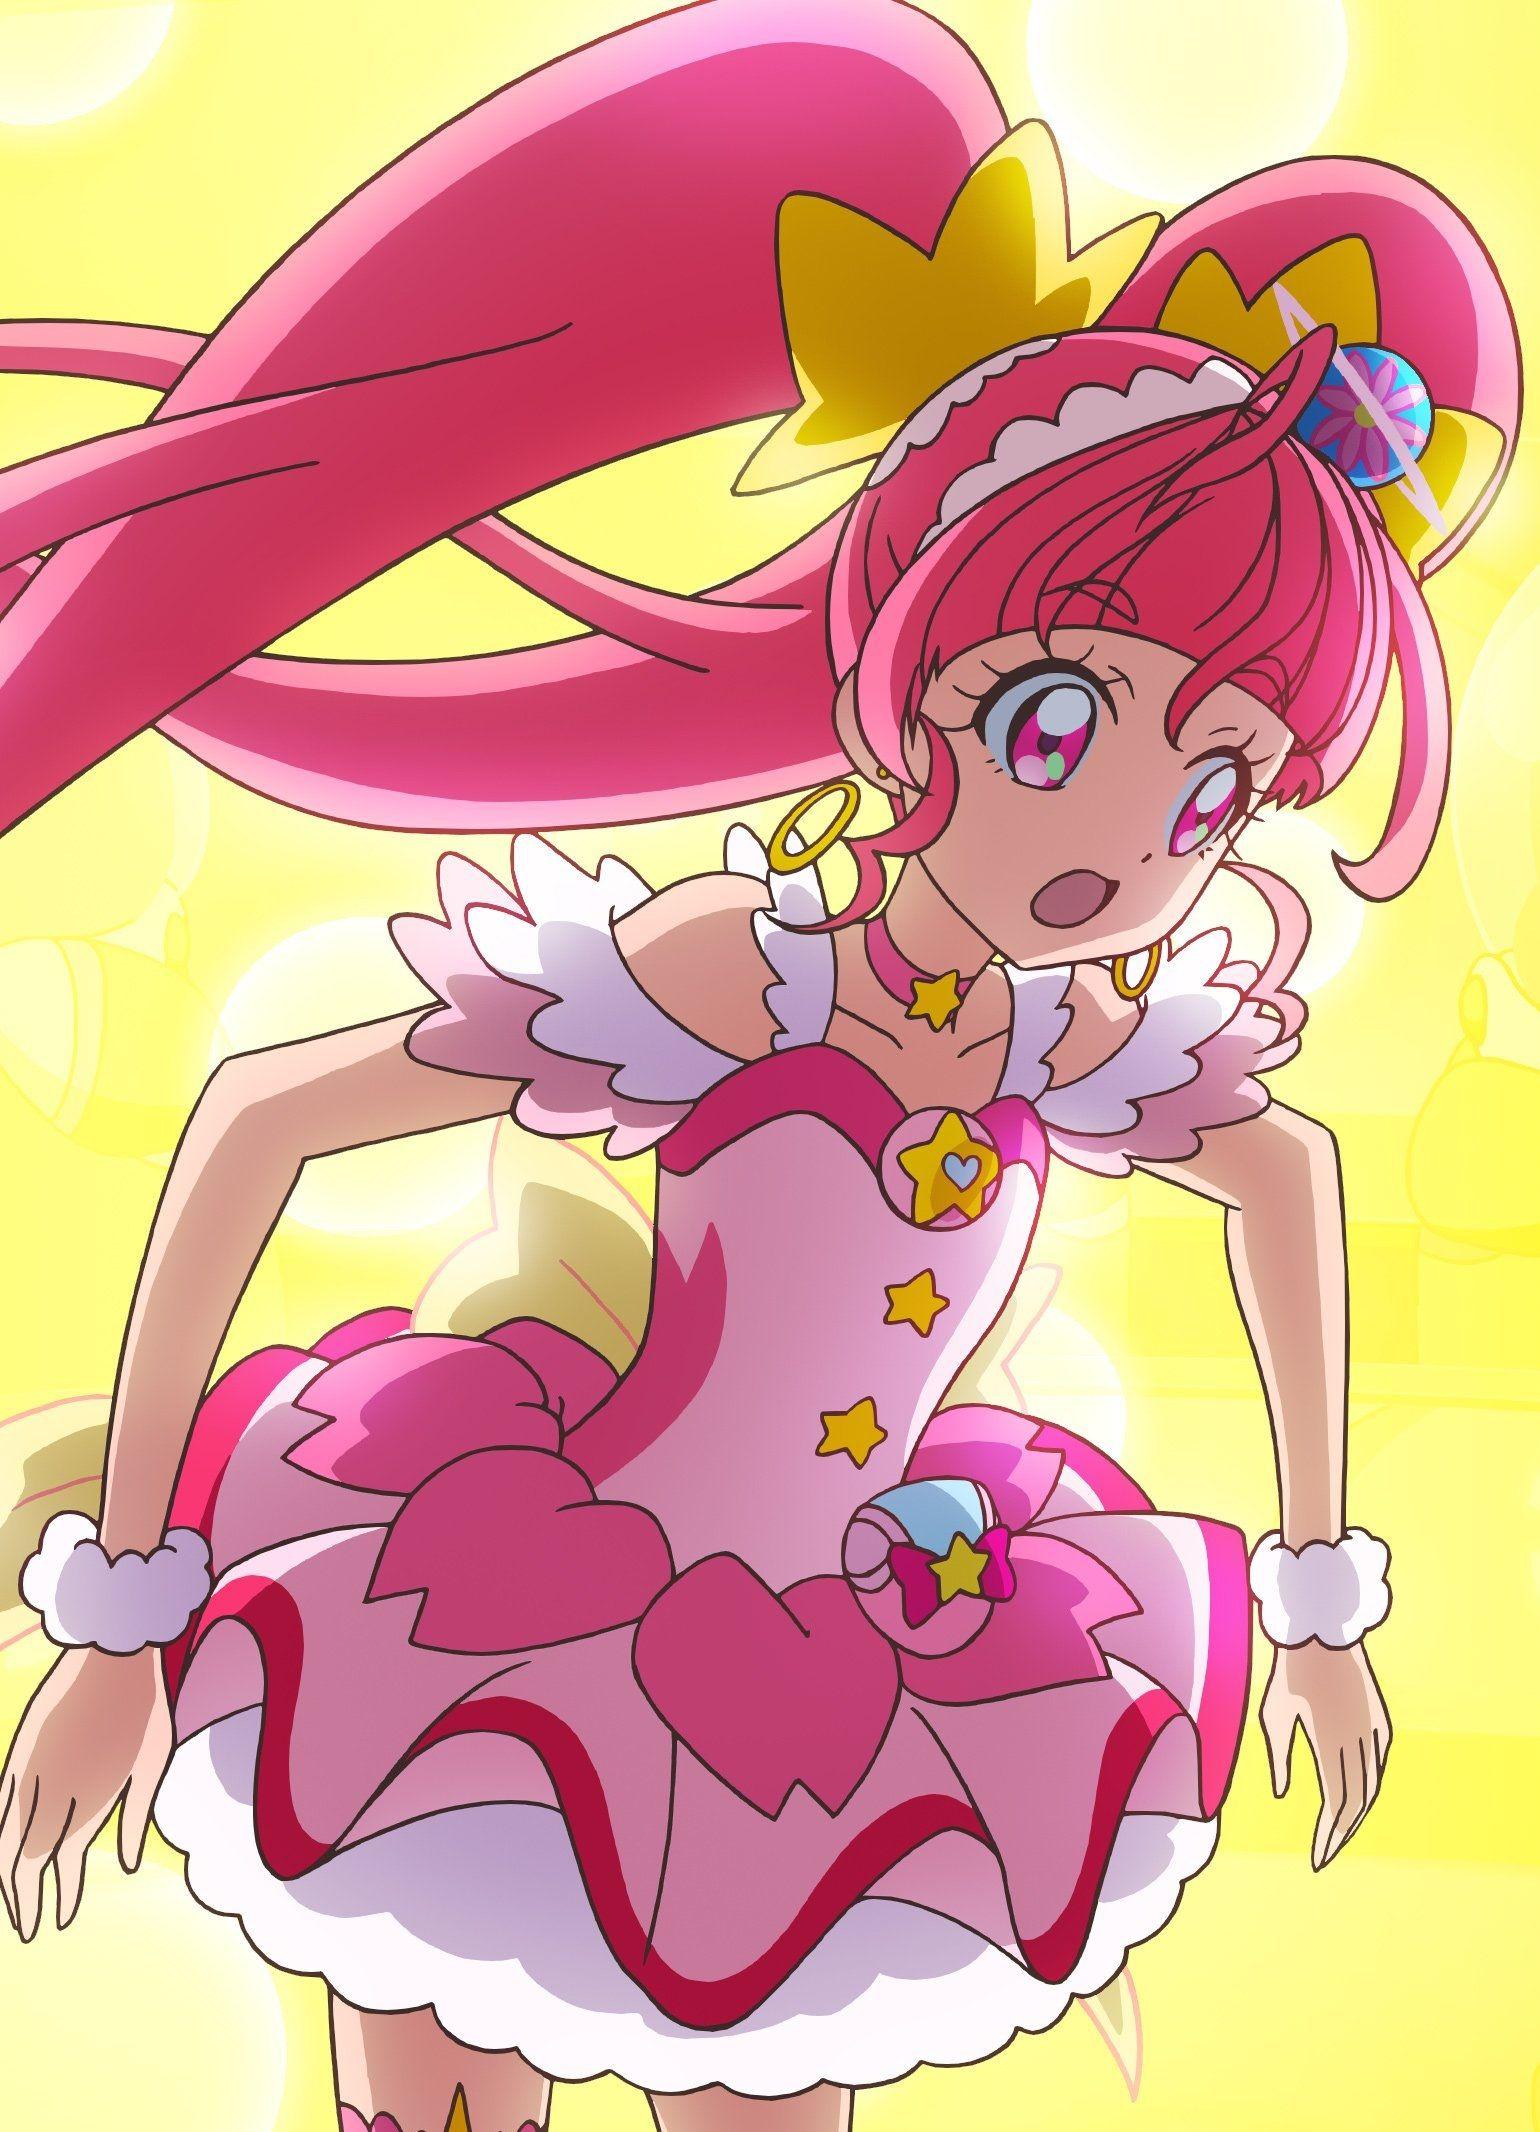 Pin by Addarious Covington on Legendary Precure All Stars